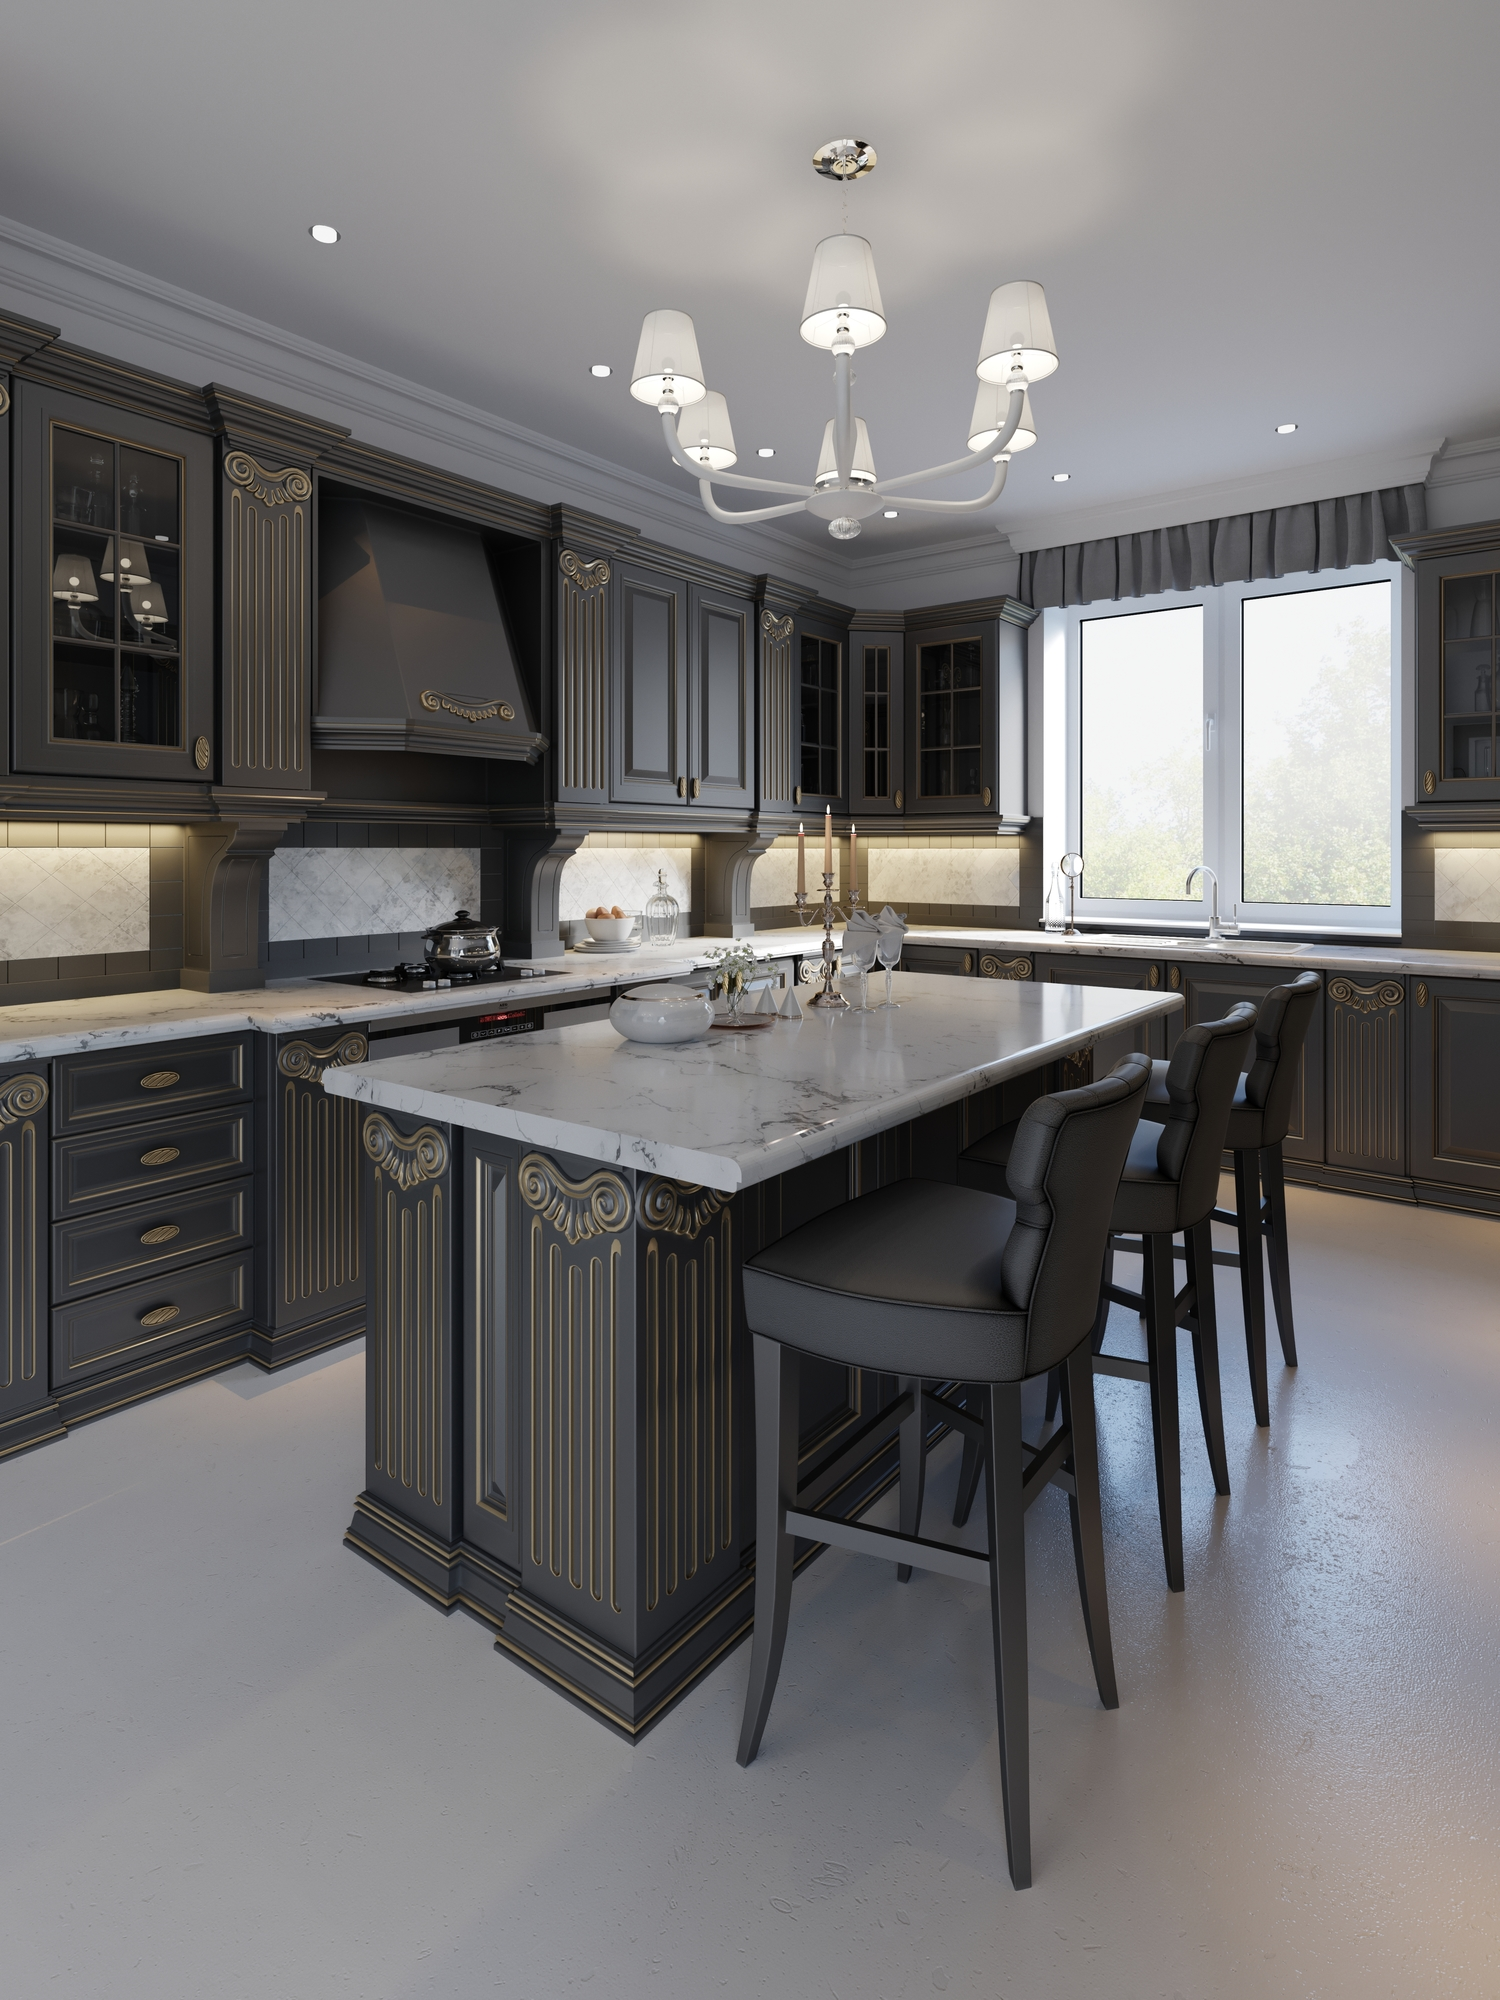 Which Kitchen Island Shape Is Right for You? - Big Island ...